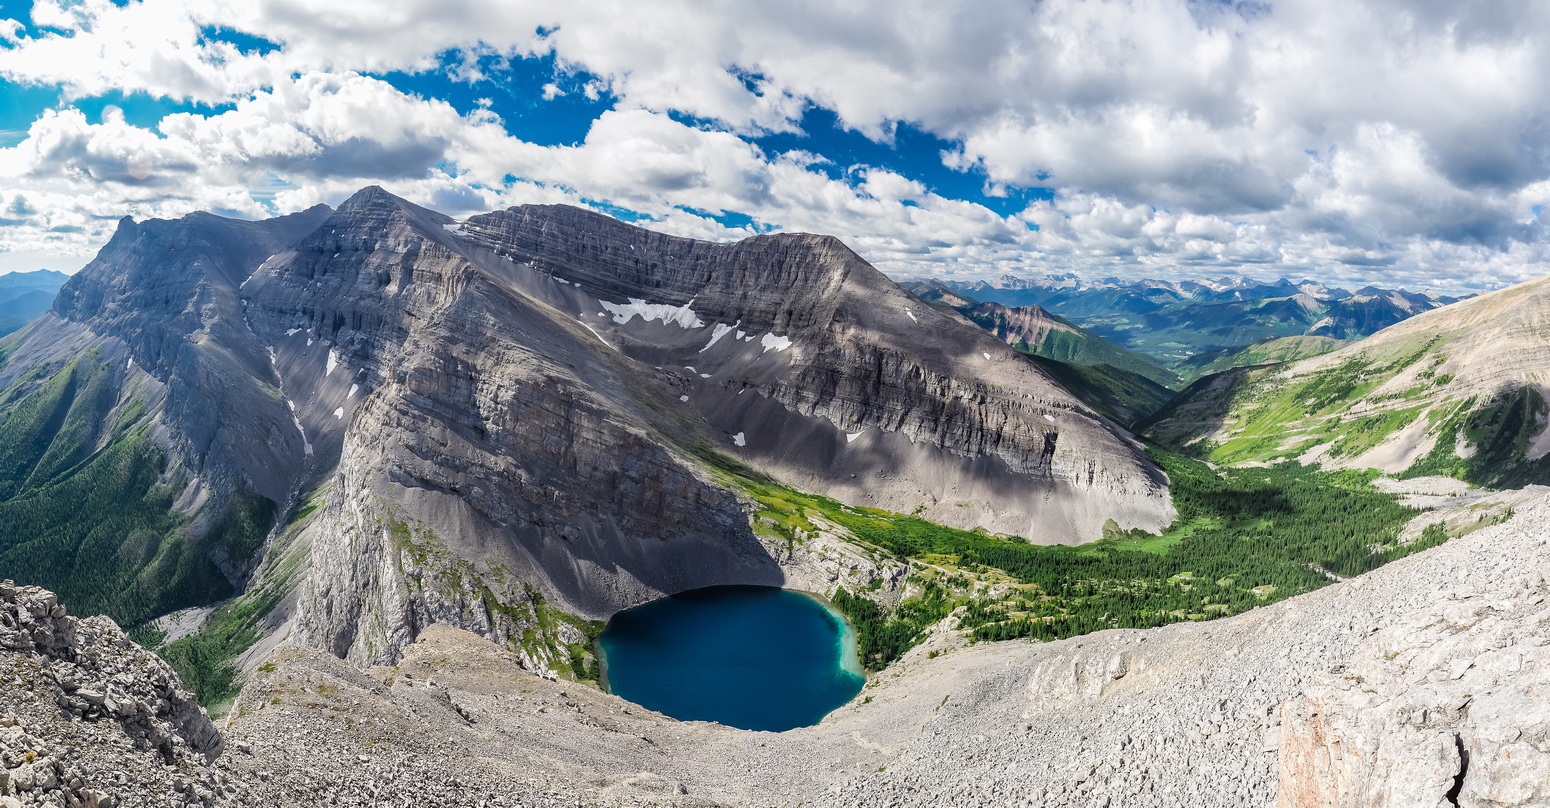 Great views down the south ridge / face to Carnarvon Lake and Mount MacLaren and Shankland.